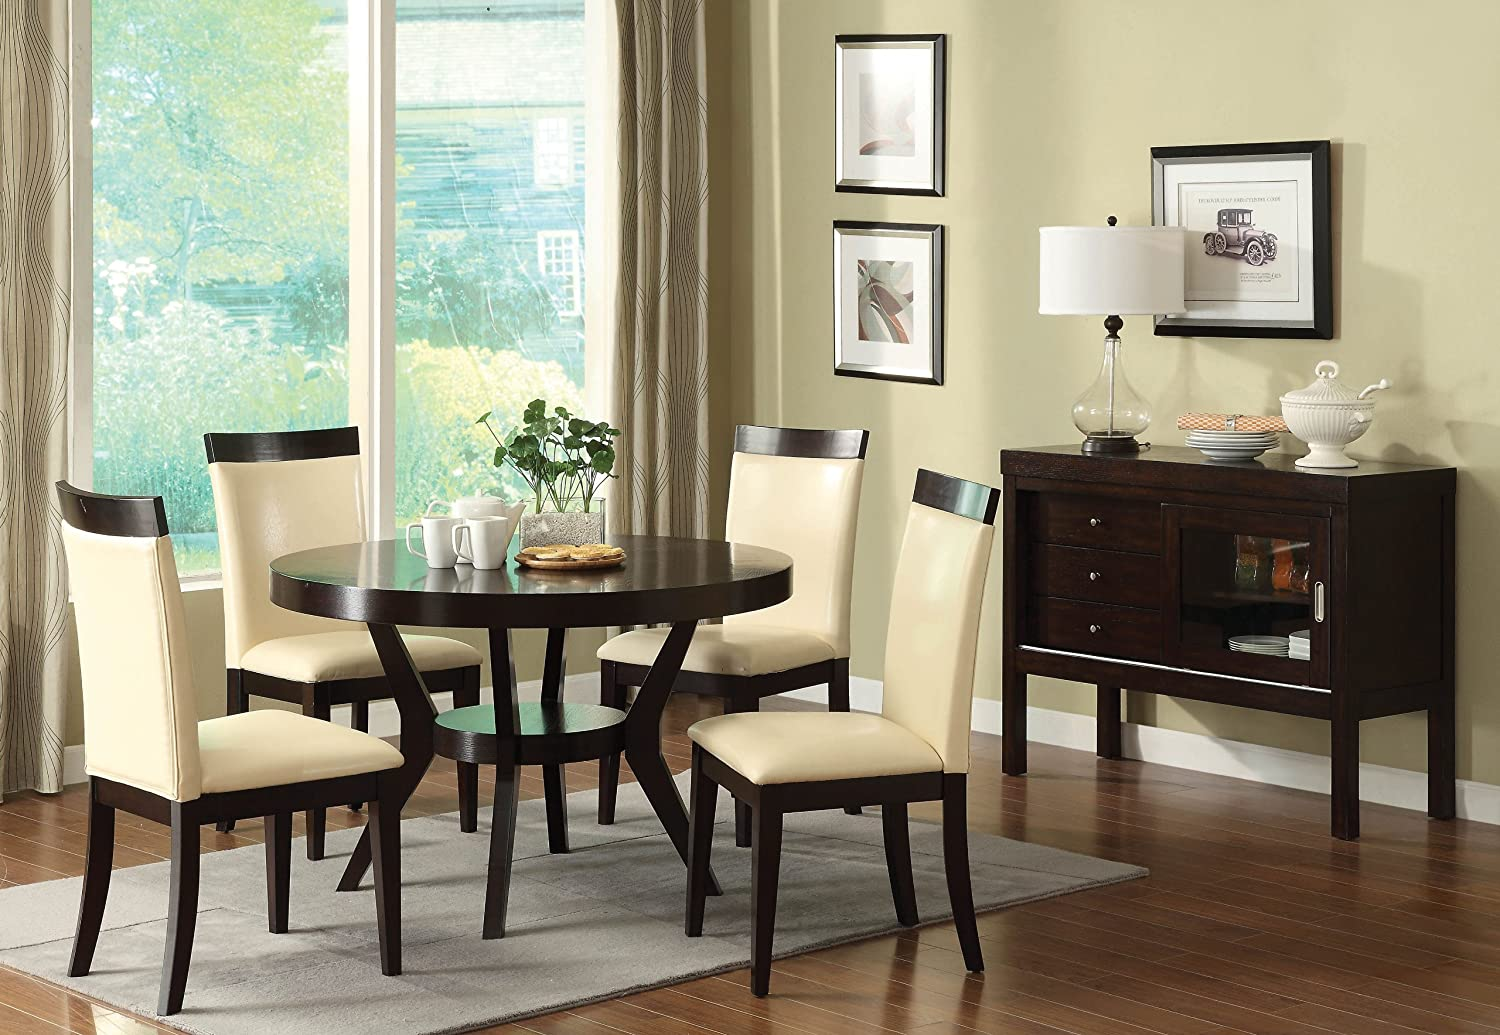 Amazoncom Furniture of America Galore 5 Piece Round Table